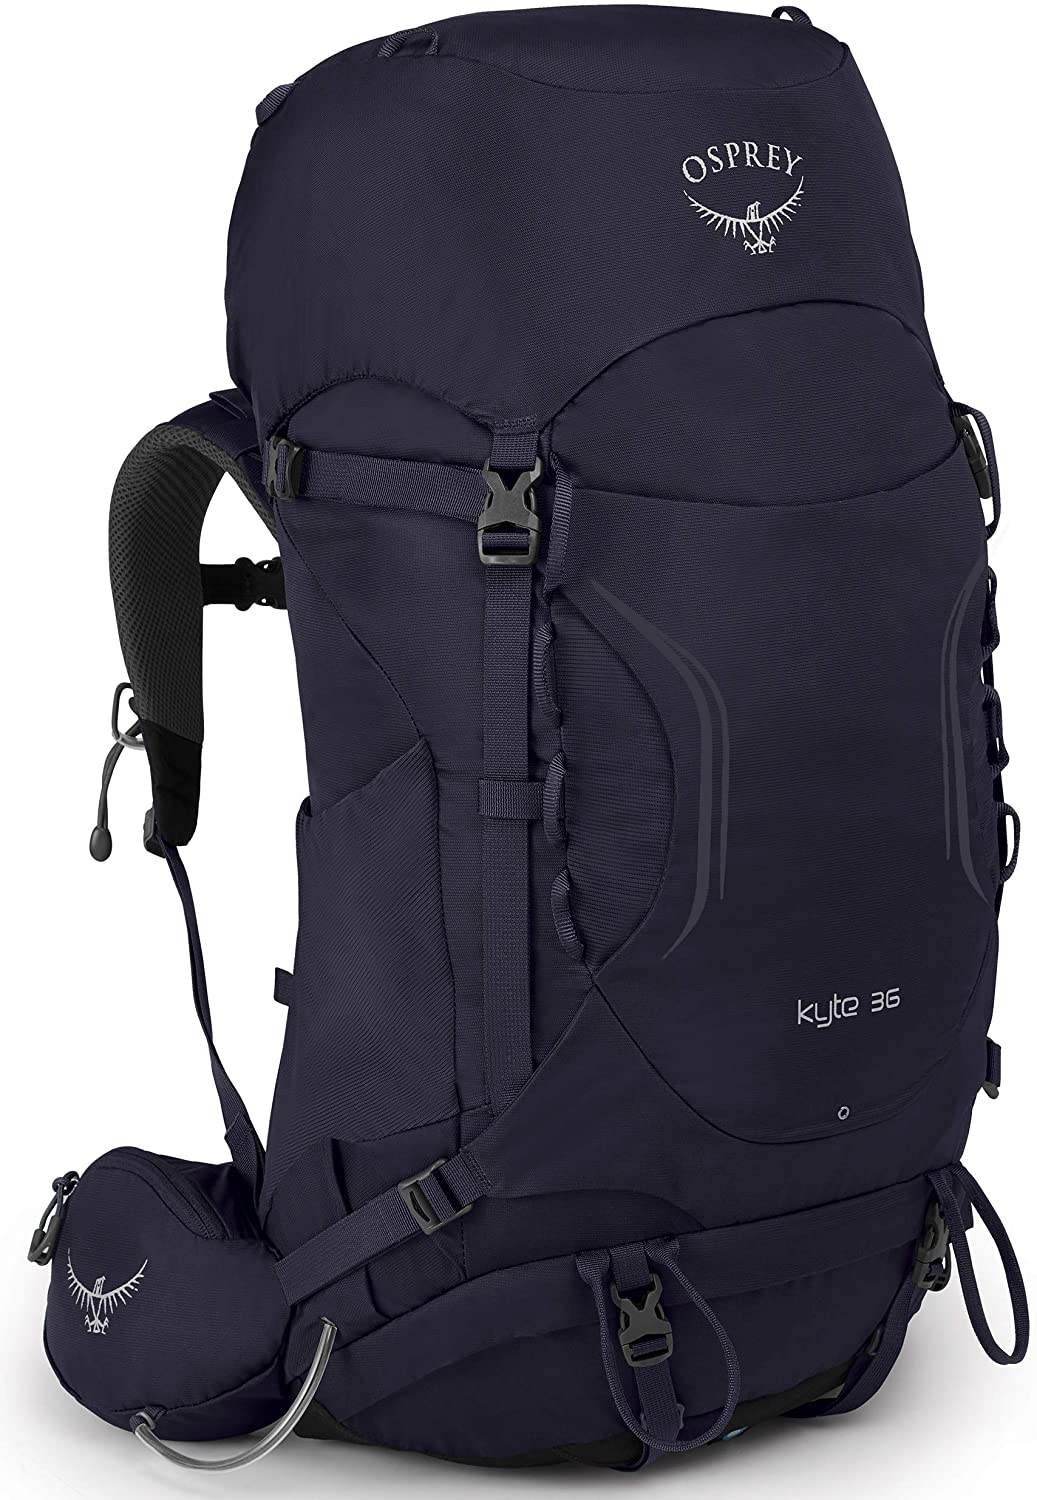 Osprey Packs Kyte 36 Women s Hiking Backpack